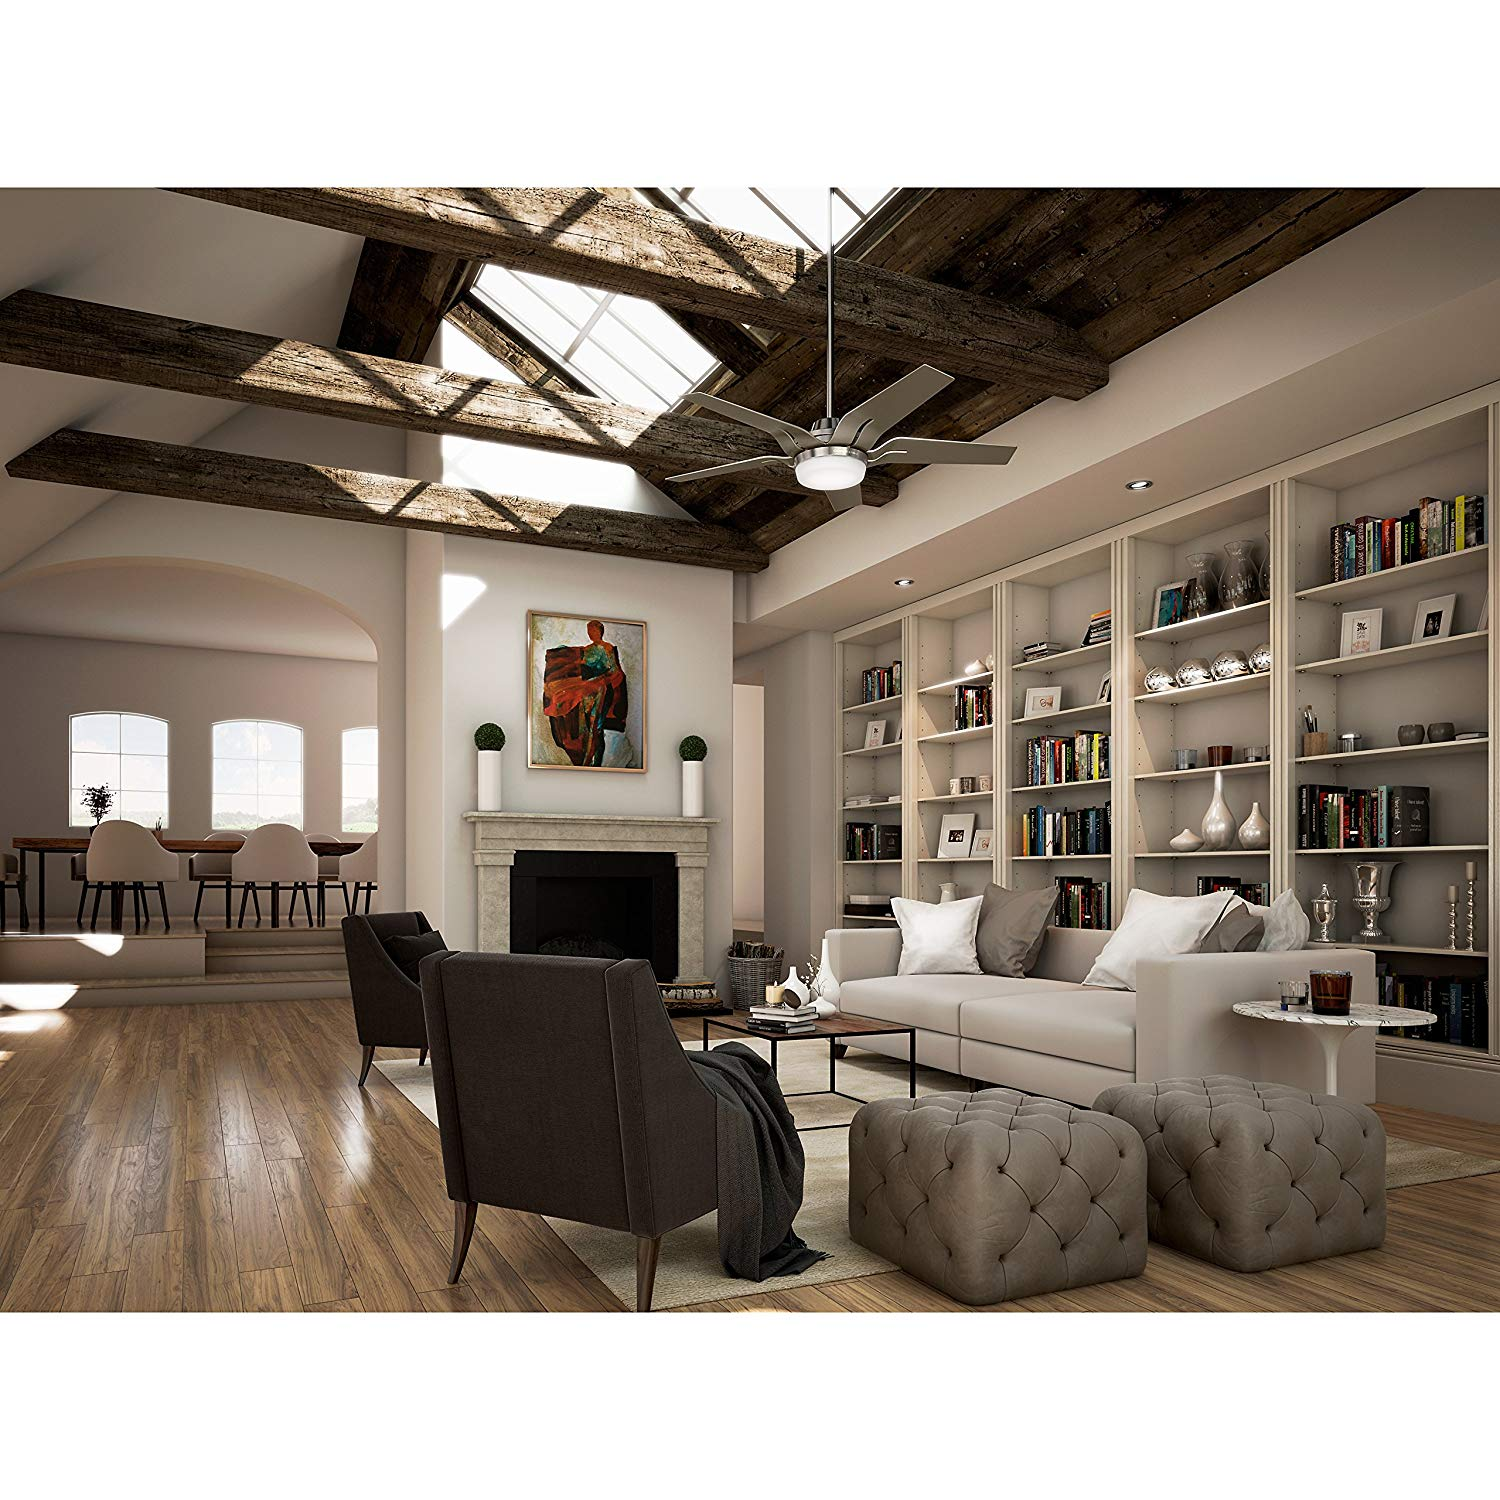 Top 10 Best Ceiling Fans with Lights in 2020 Reviews   Buying Guide